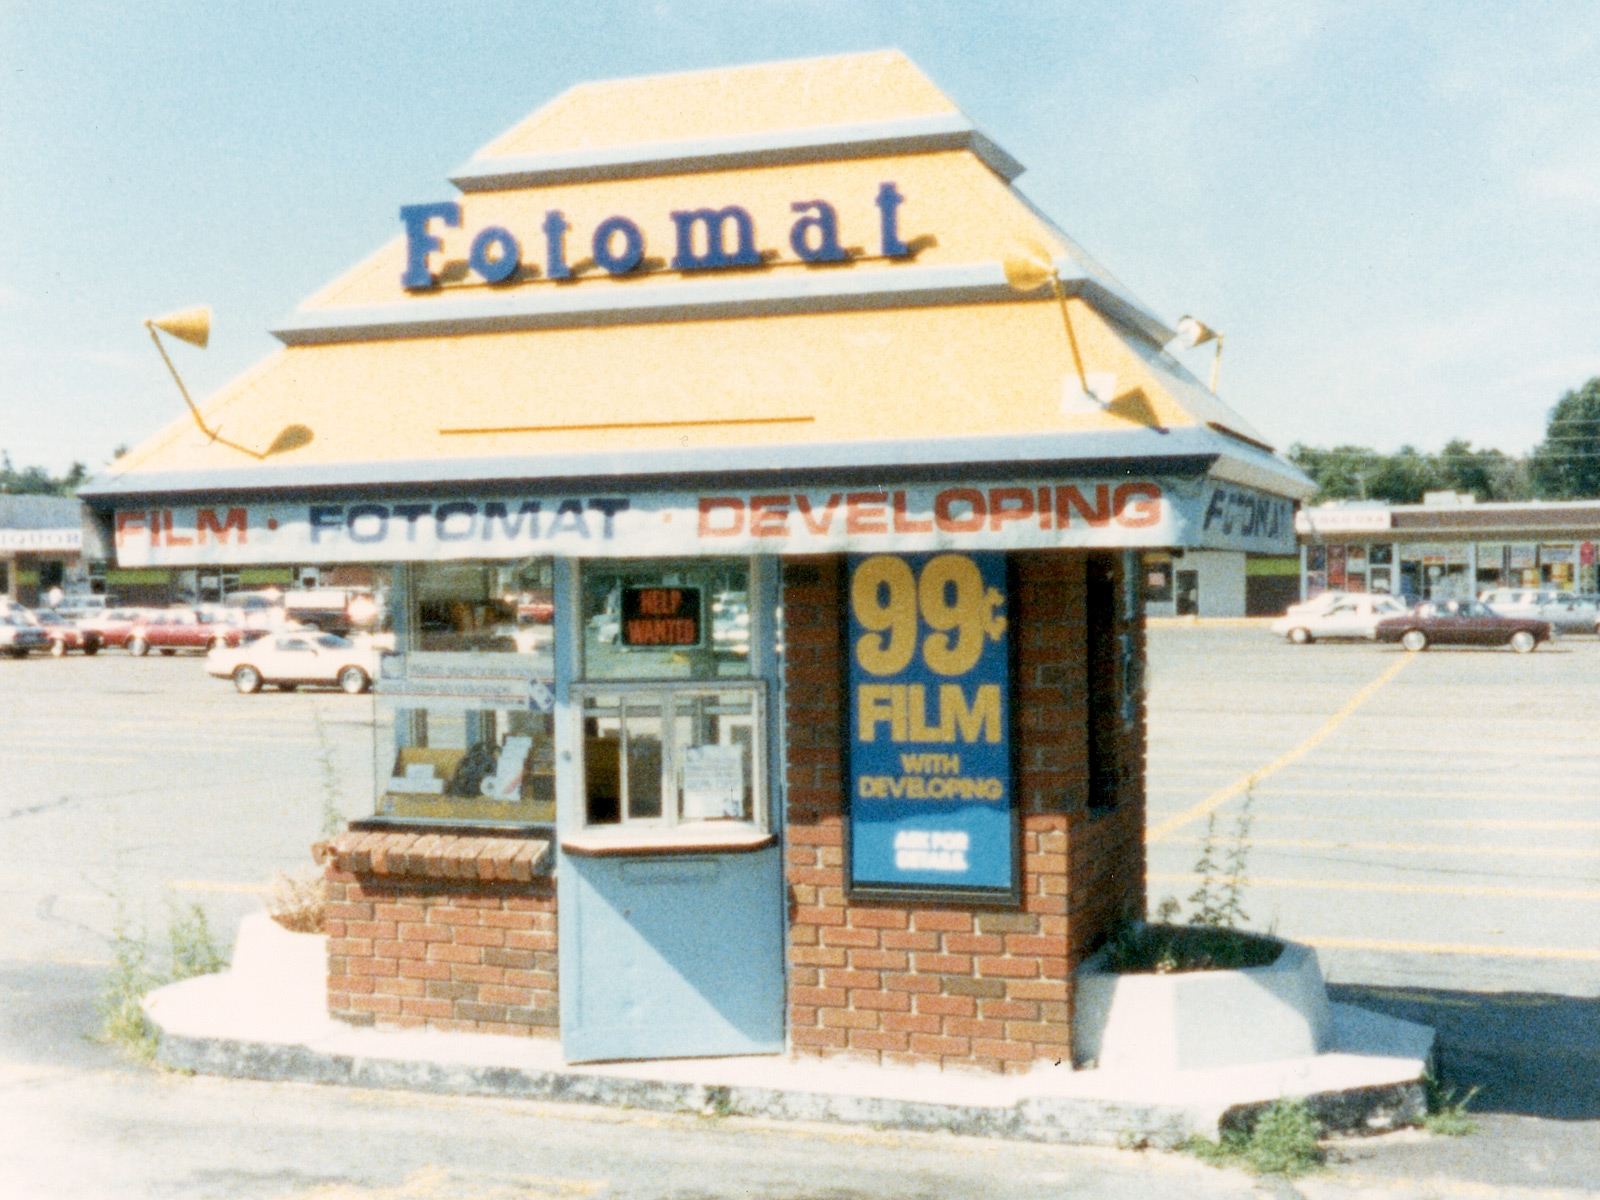 I found this photo of a Fotomat! Wikimedia creative commons.